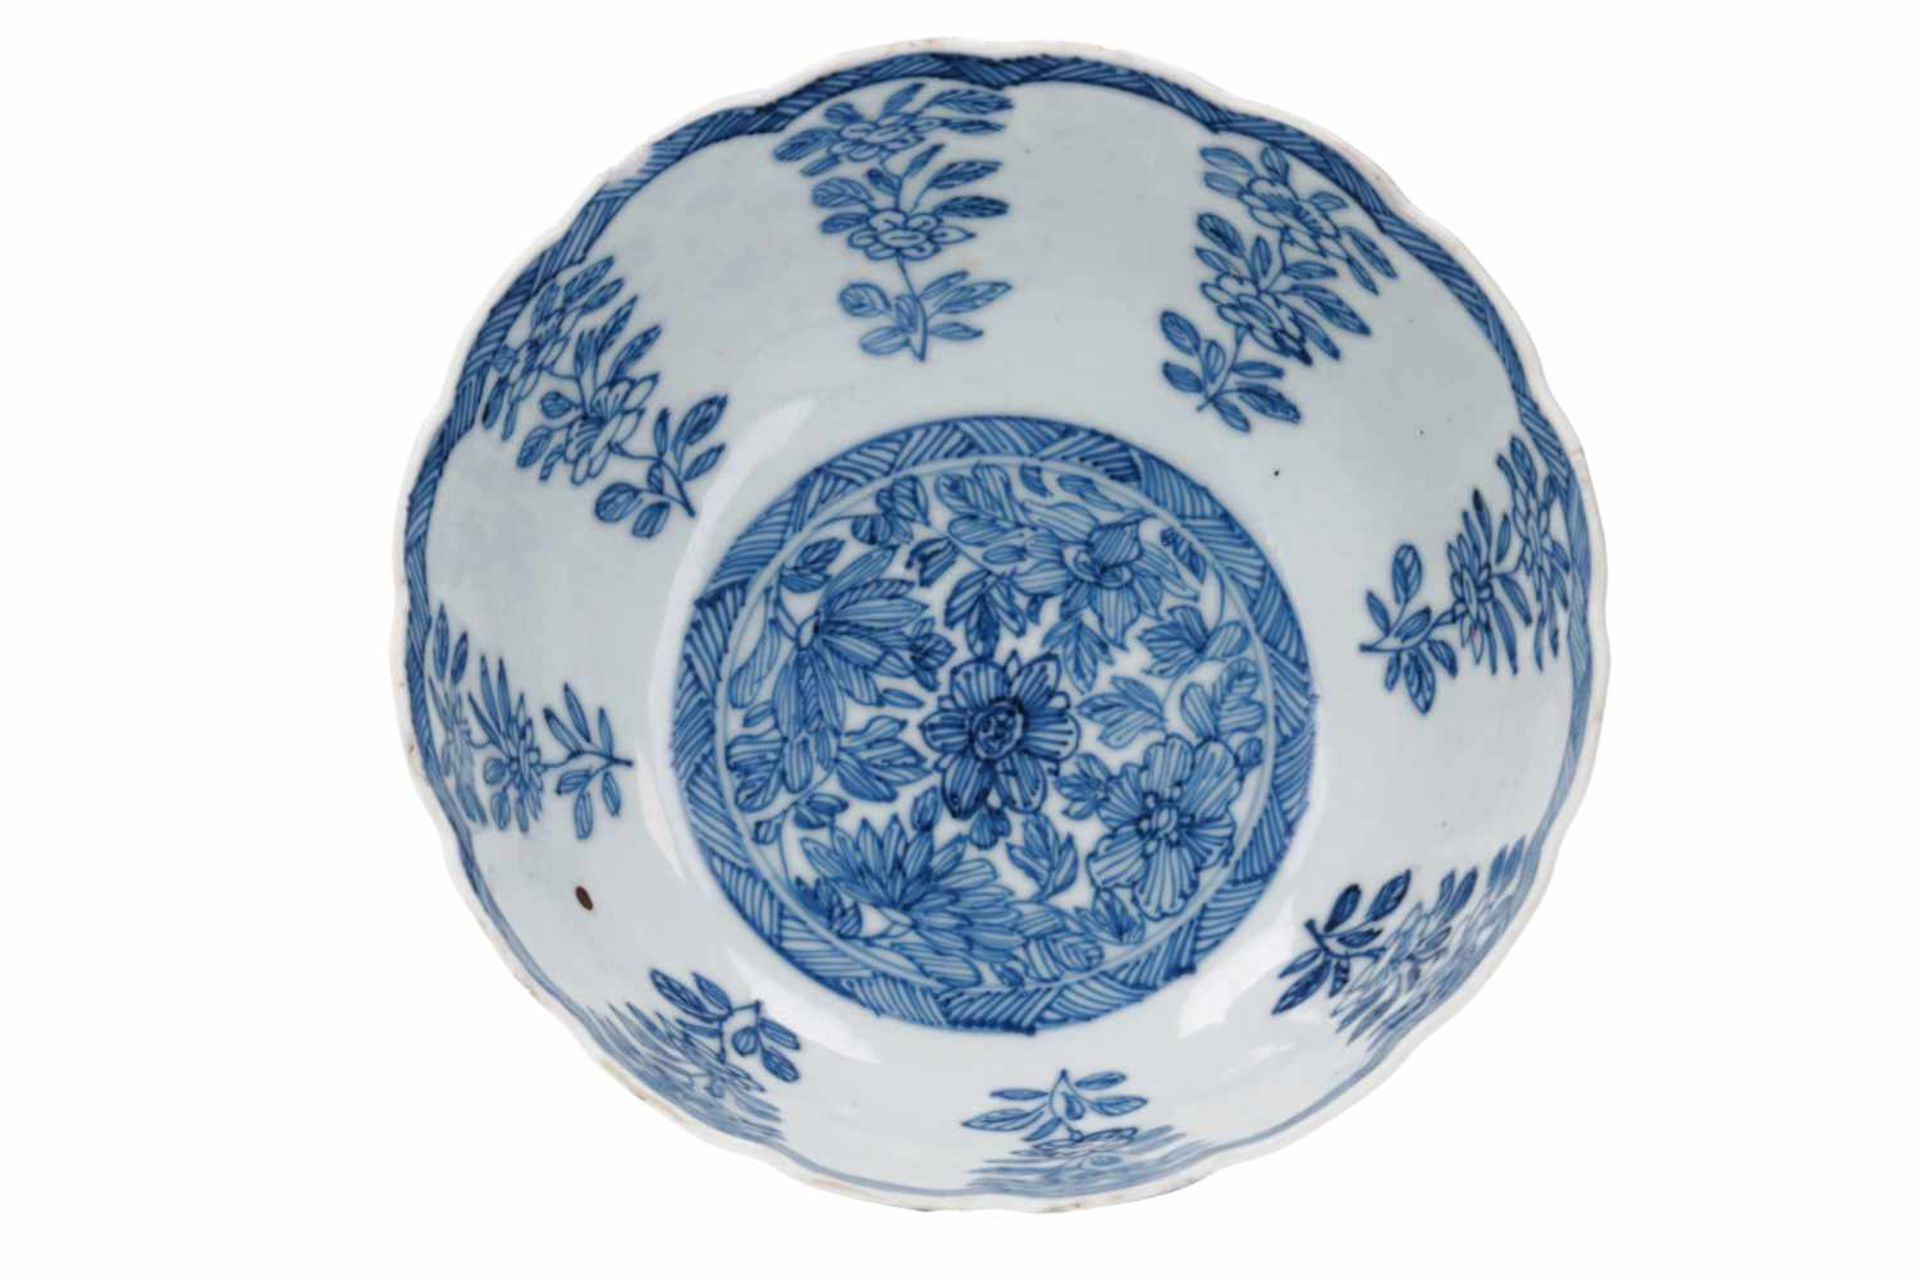 A pair of blue and white porcelain tazzas, decorated with flowers. Marked with symbol. China, - Bild 6 aus 14